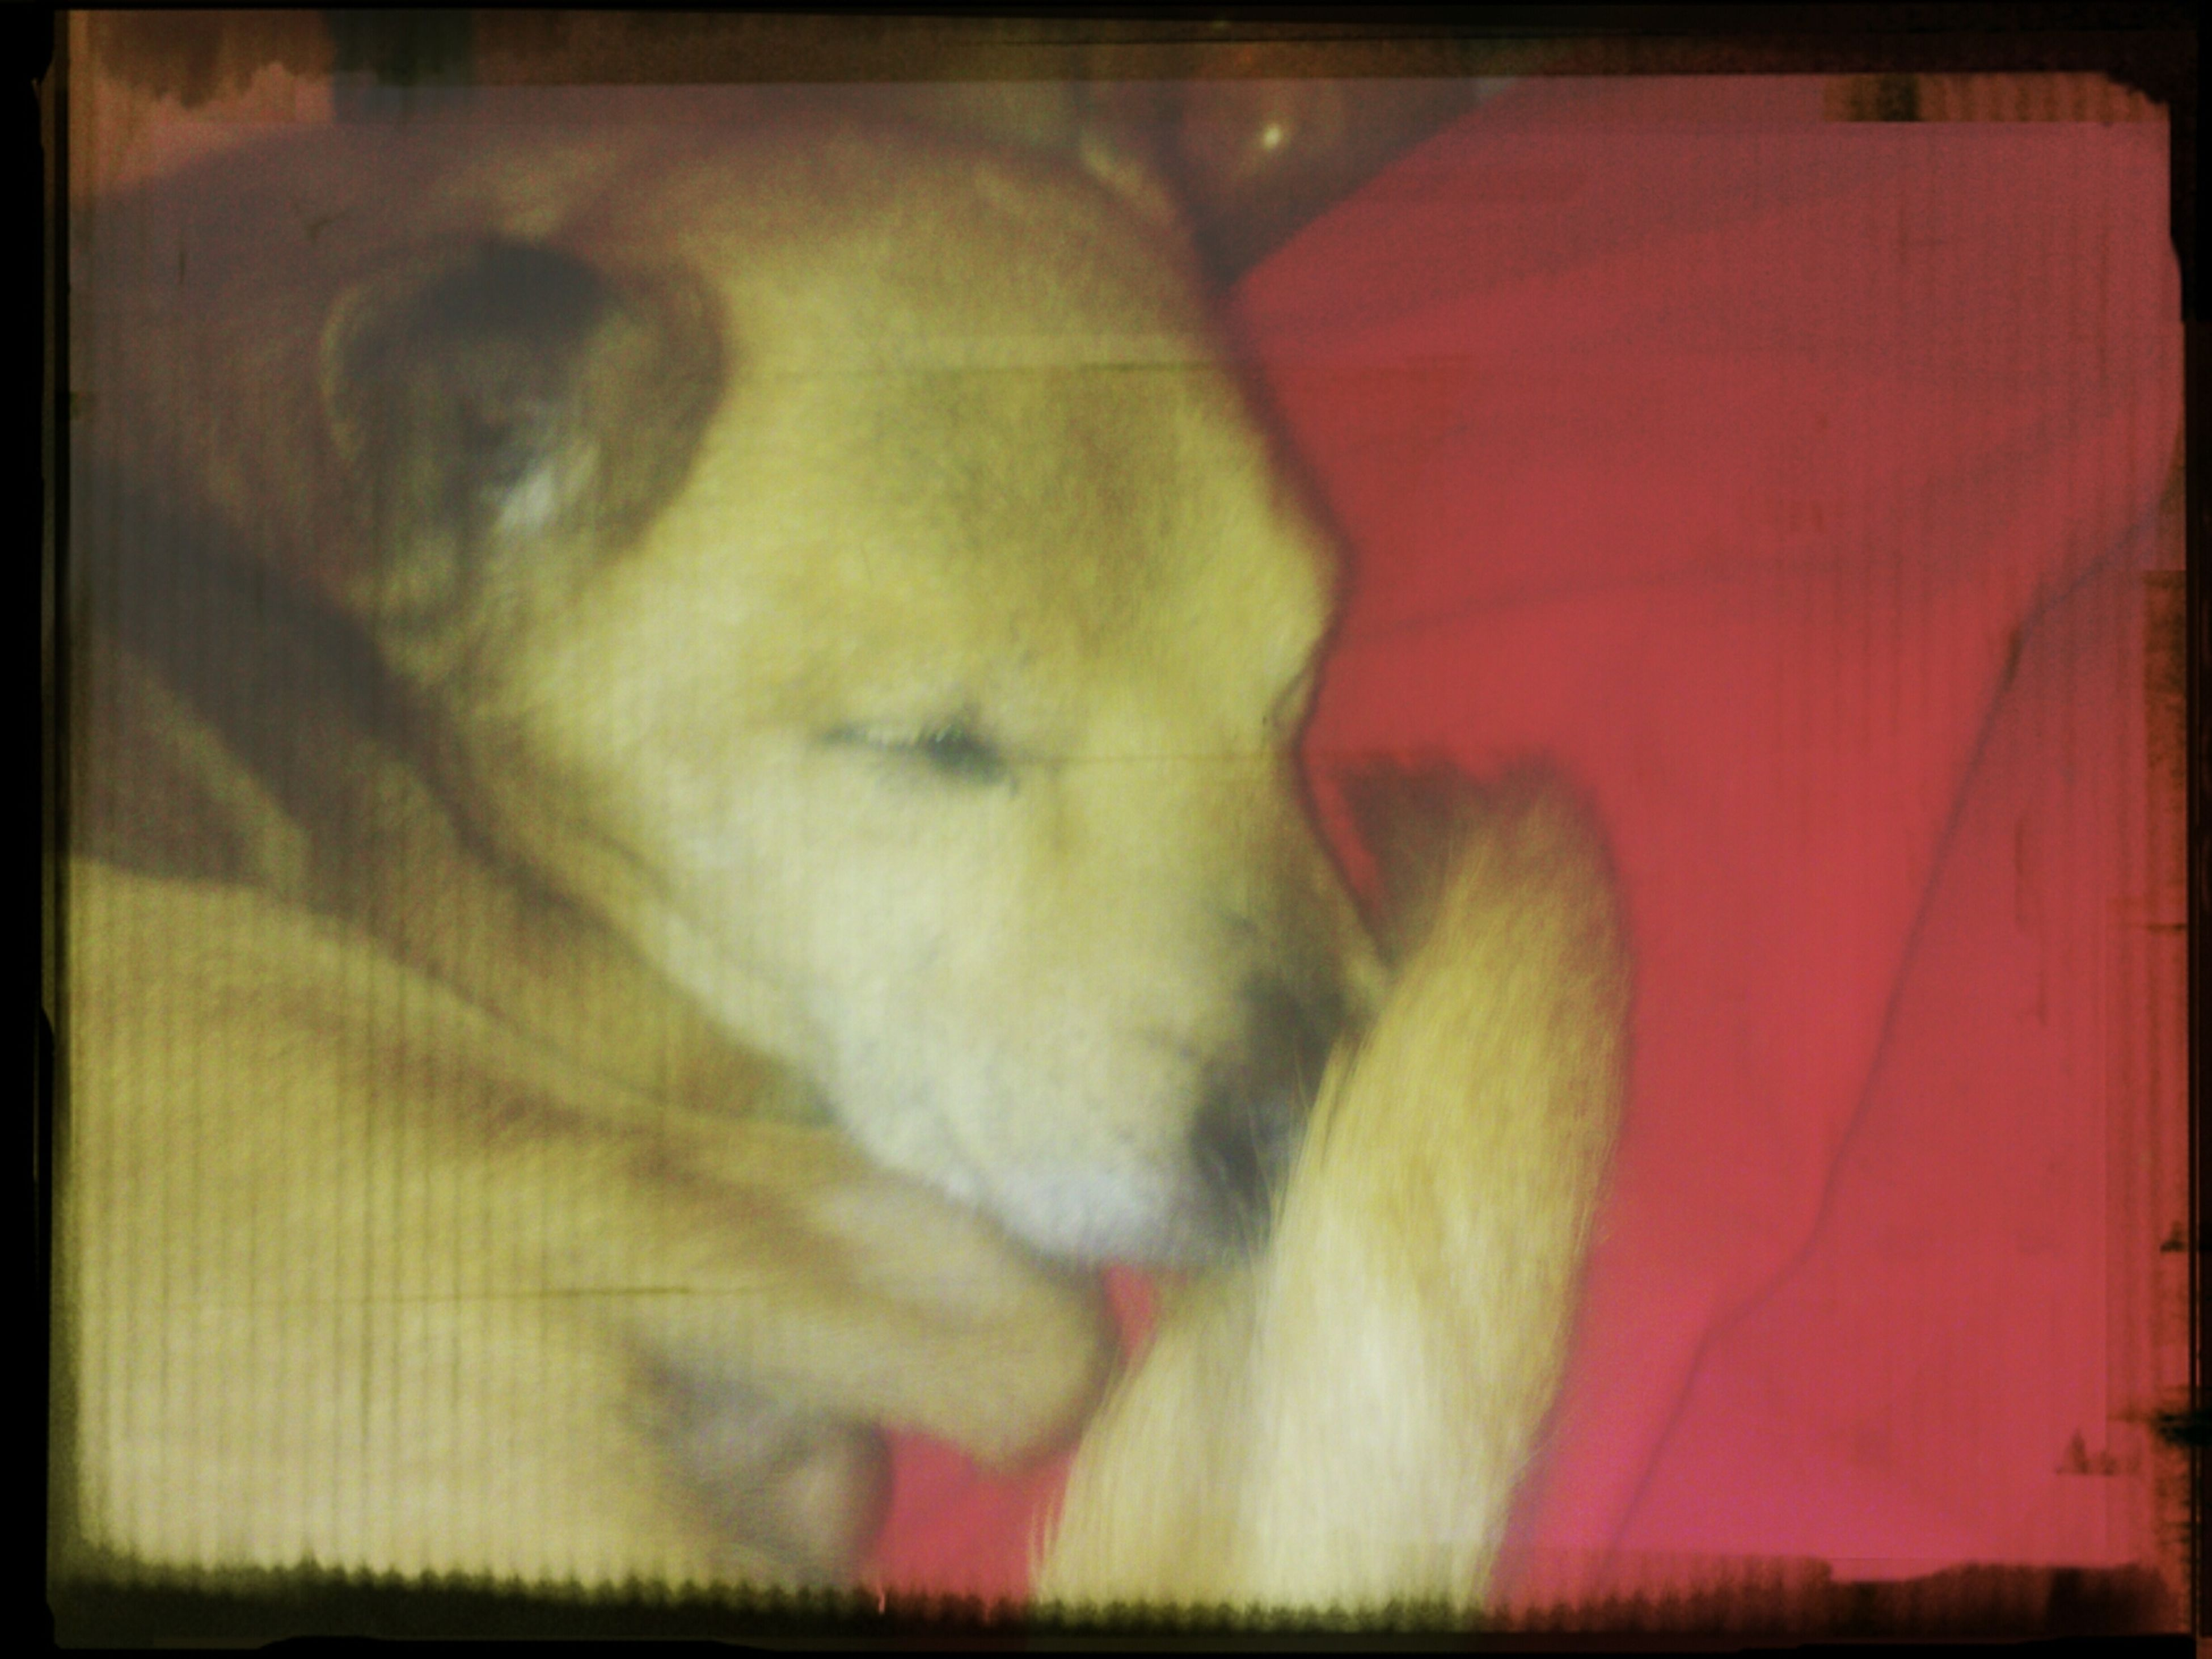 transfer print, auto post production filter, indoors, lifestyles, men, rear view, full length, leisure activity, dog, domestic animals, person, pets, side view, one animal, casual clothing, standing, red, mammal